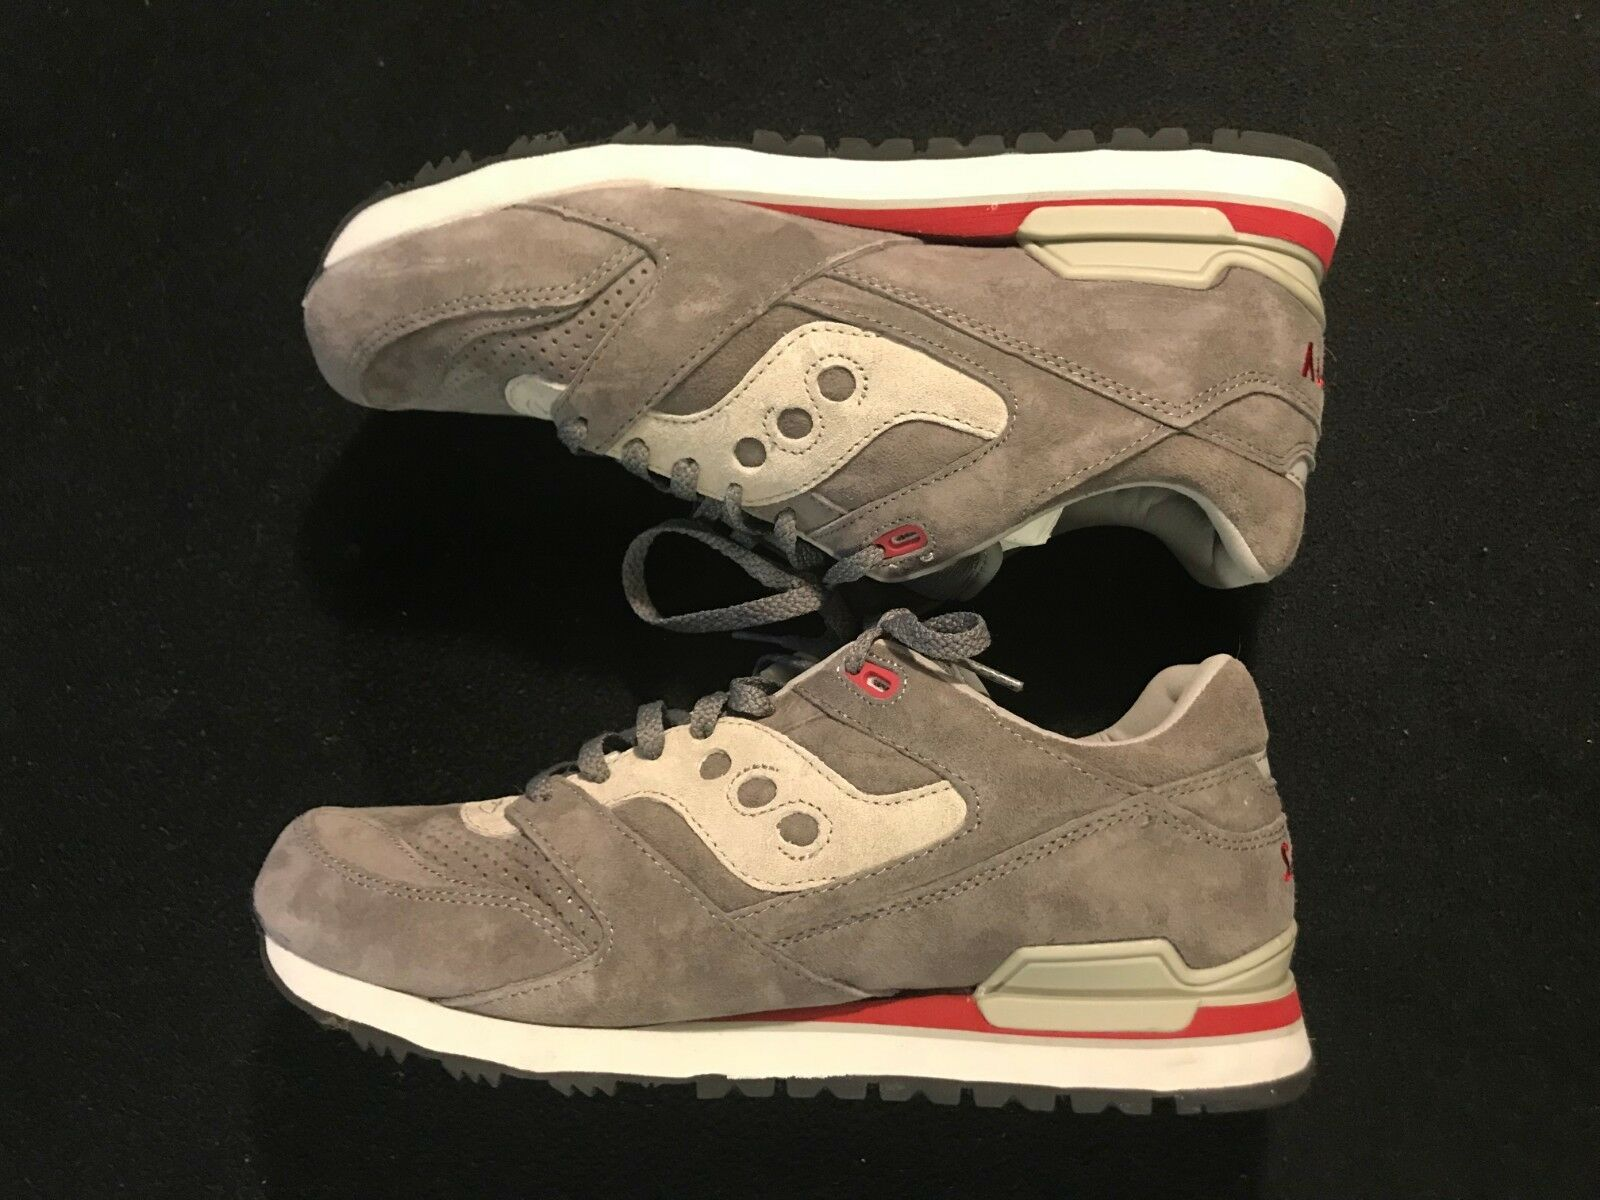 4ab0921954b9b ... Running shoes  UK. Australia. Europe. Reebok Lifter PR shoes - Men s  Weightlifting shoes SKU CN4513 Training SIZE 9.5. Saucony Courageous Size  11 Grey ...